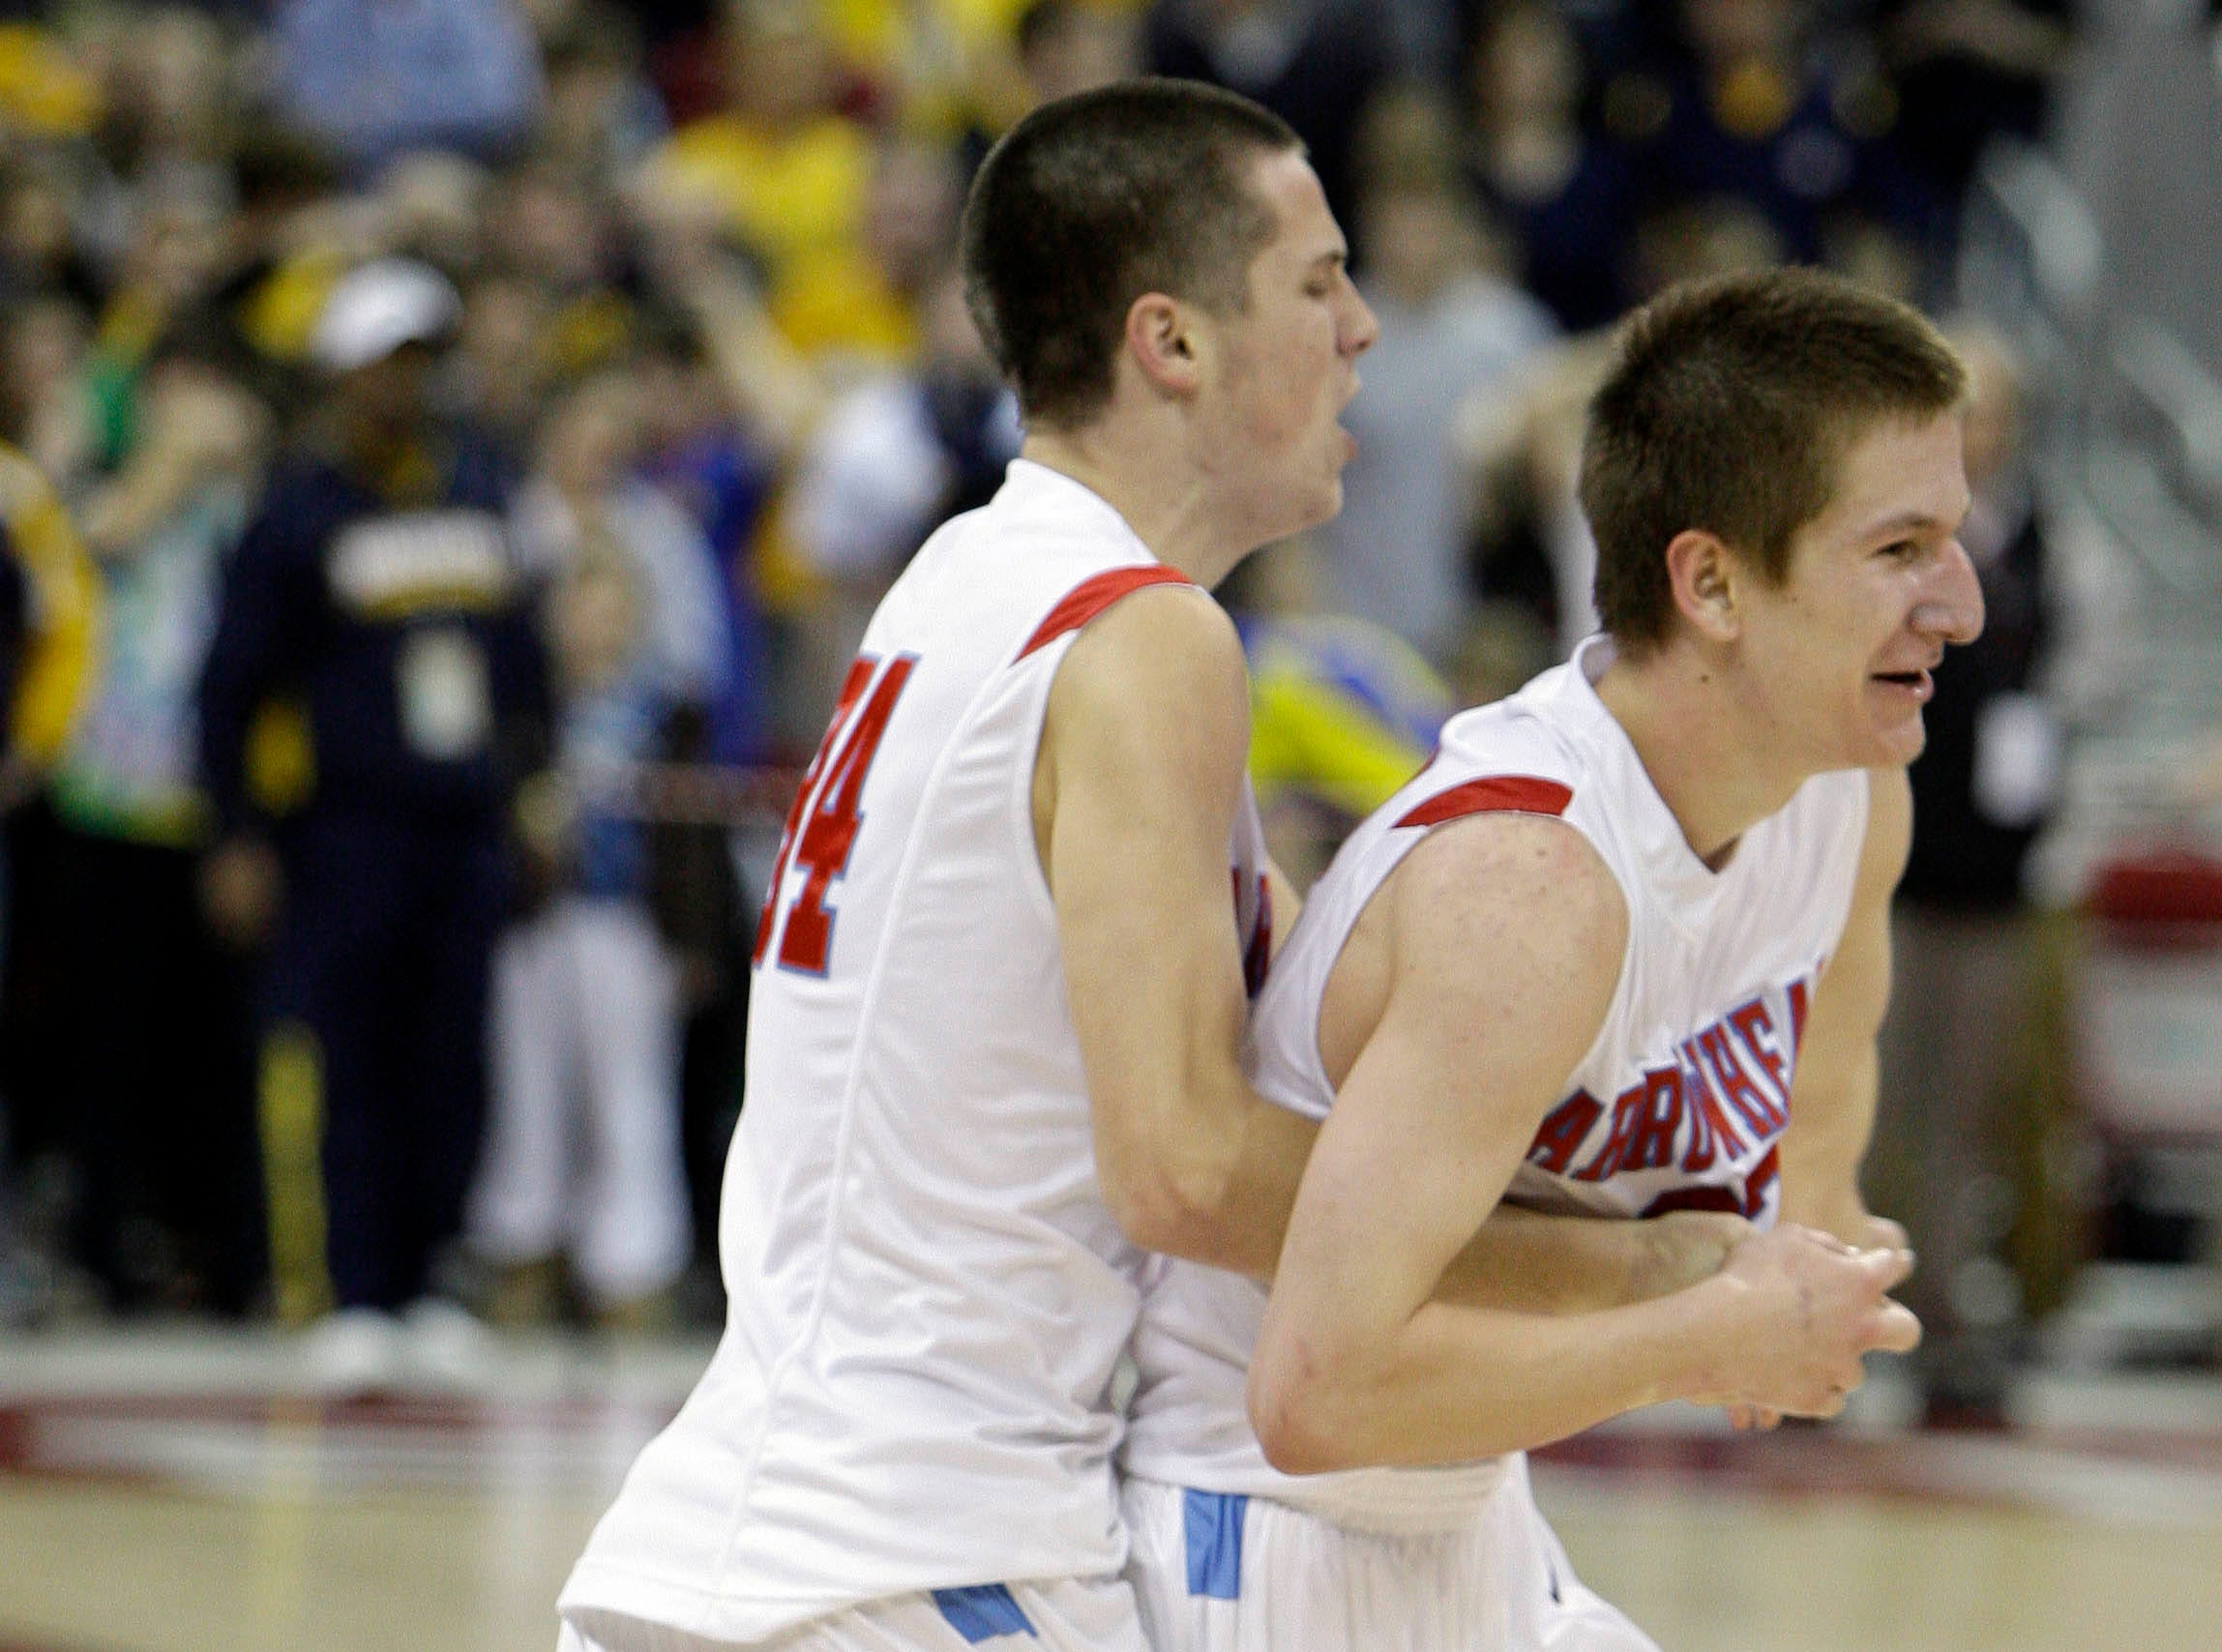 Arrowhead's Charles Rushman  is embraced by teammate Ryan May after making the game-winning shot during the second half of their semifinal game Friday, March 19, 2010 during the WIAA state tournament at the Kohl Center in Madison, Wis. Arrowhead beat Marquette 60-58 on a last second shot.